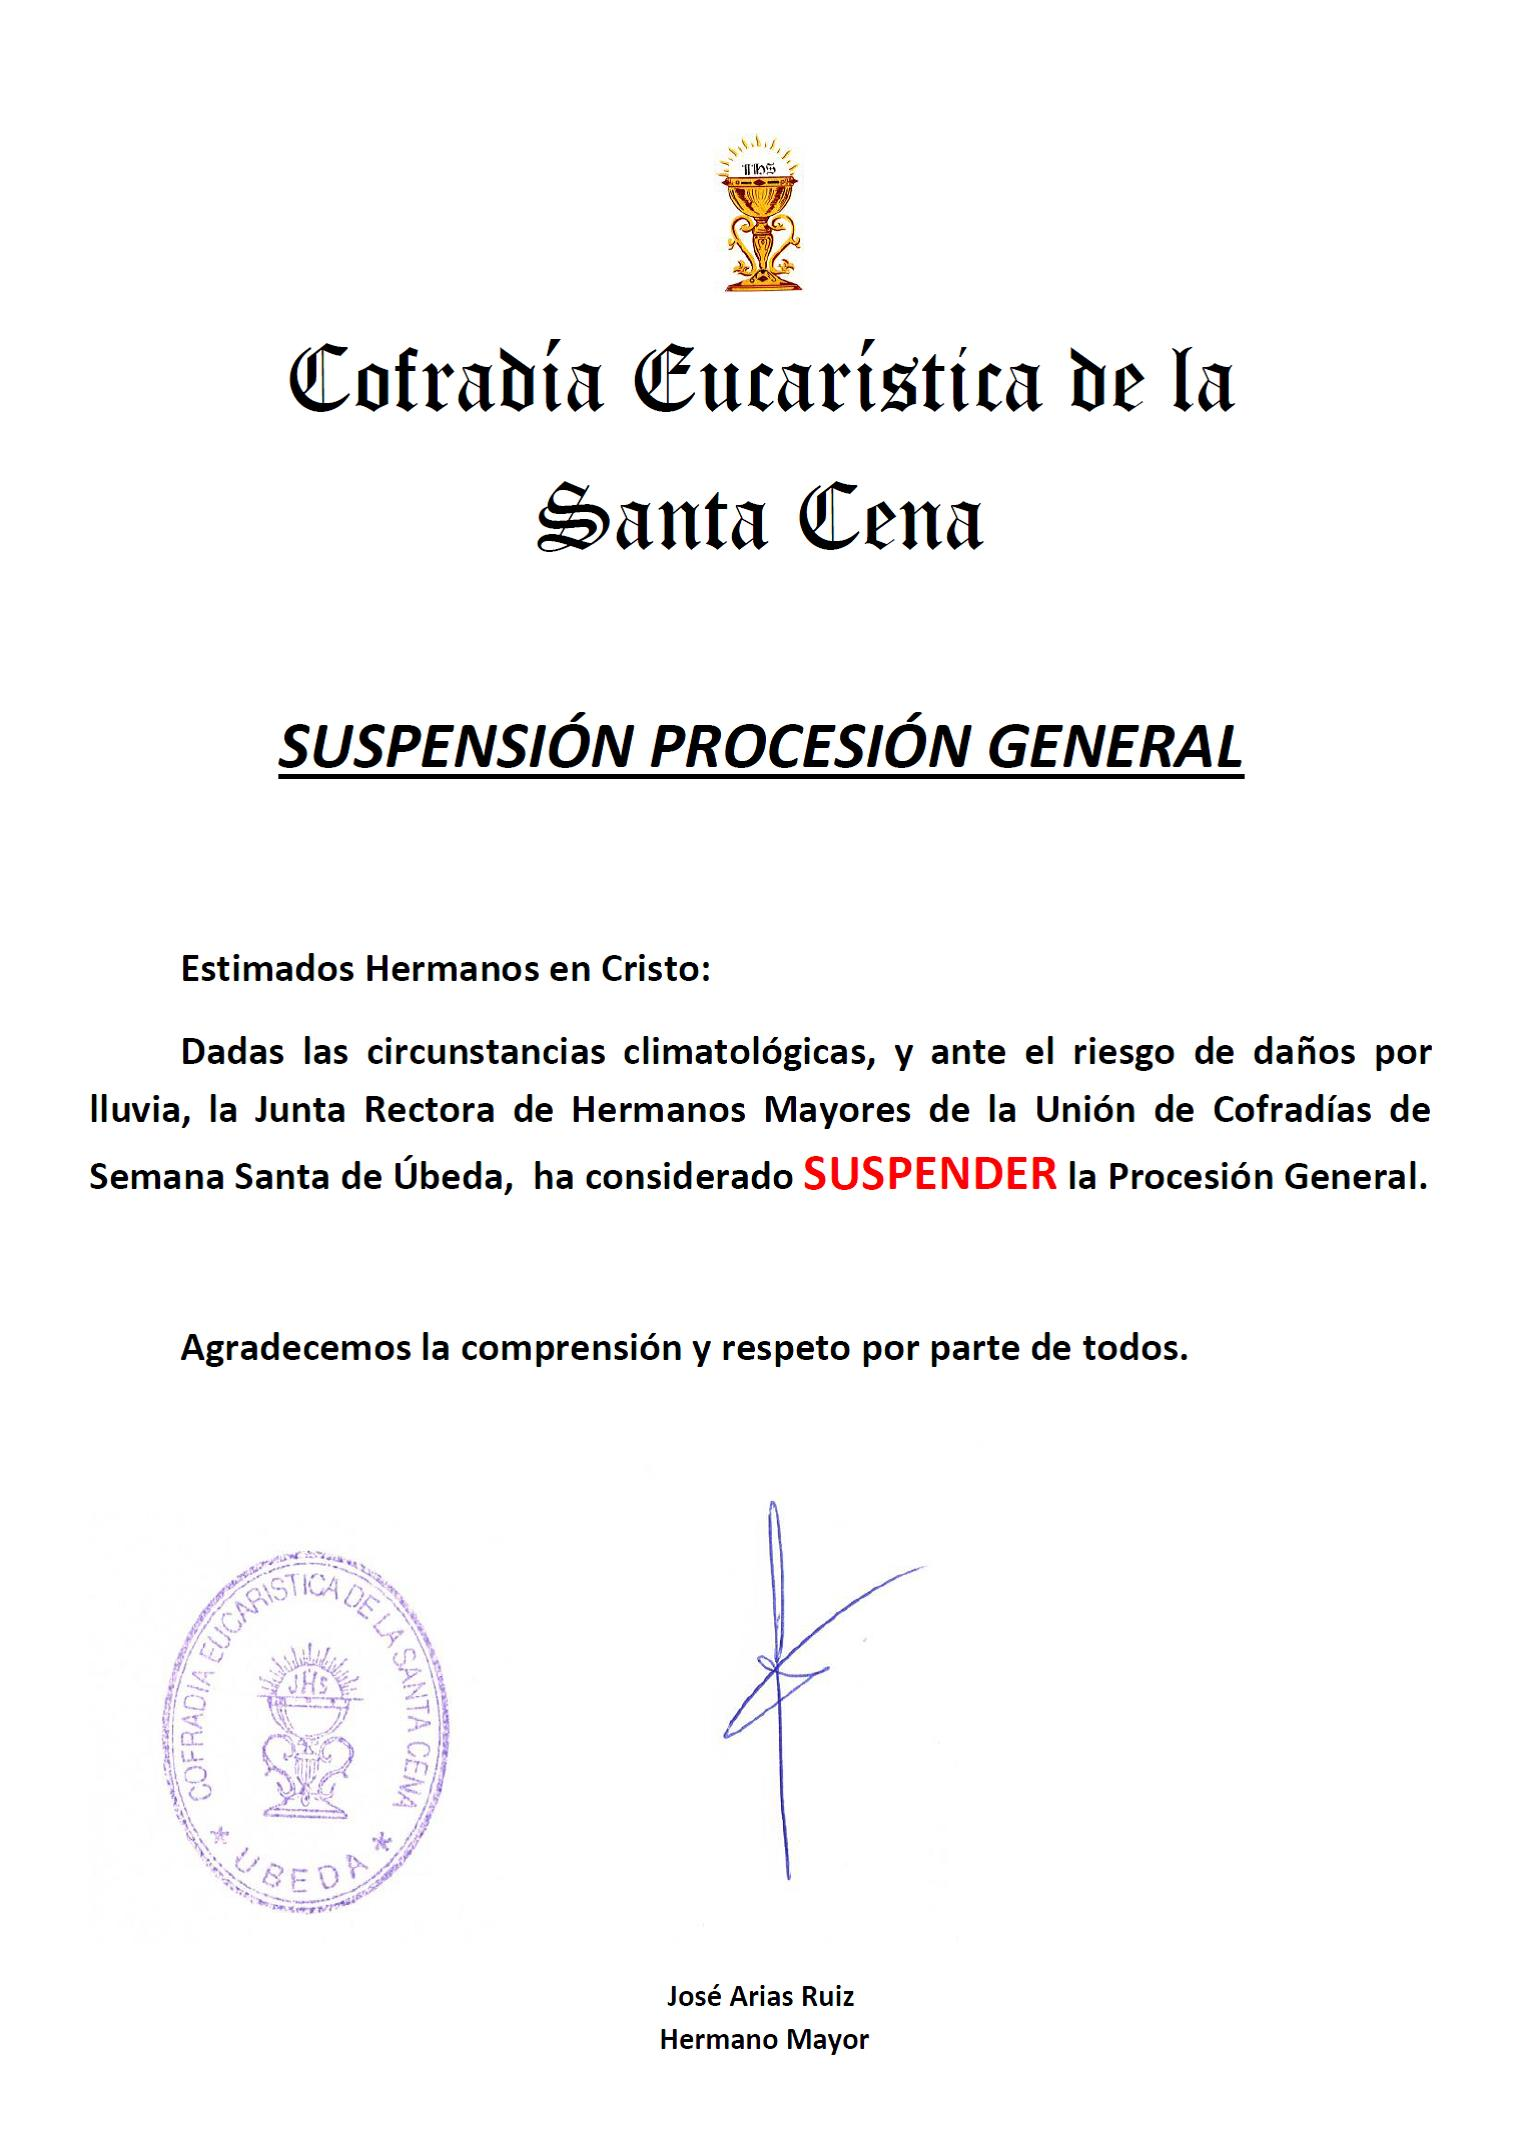 suspension general cena 2019